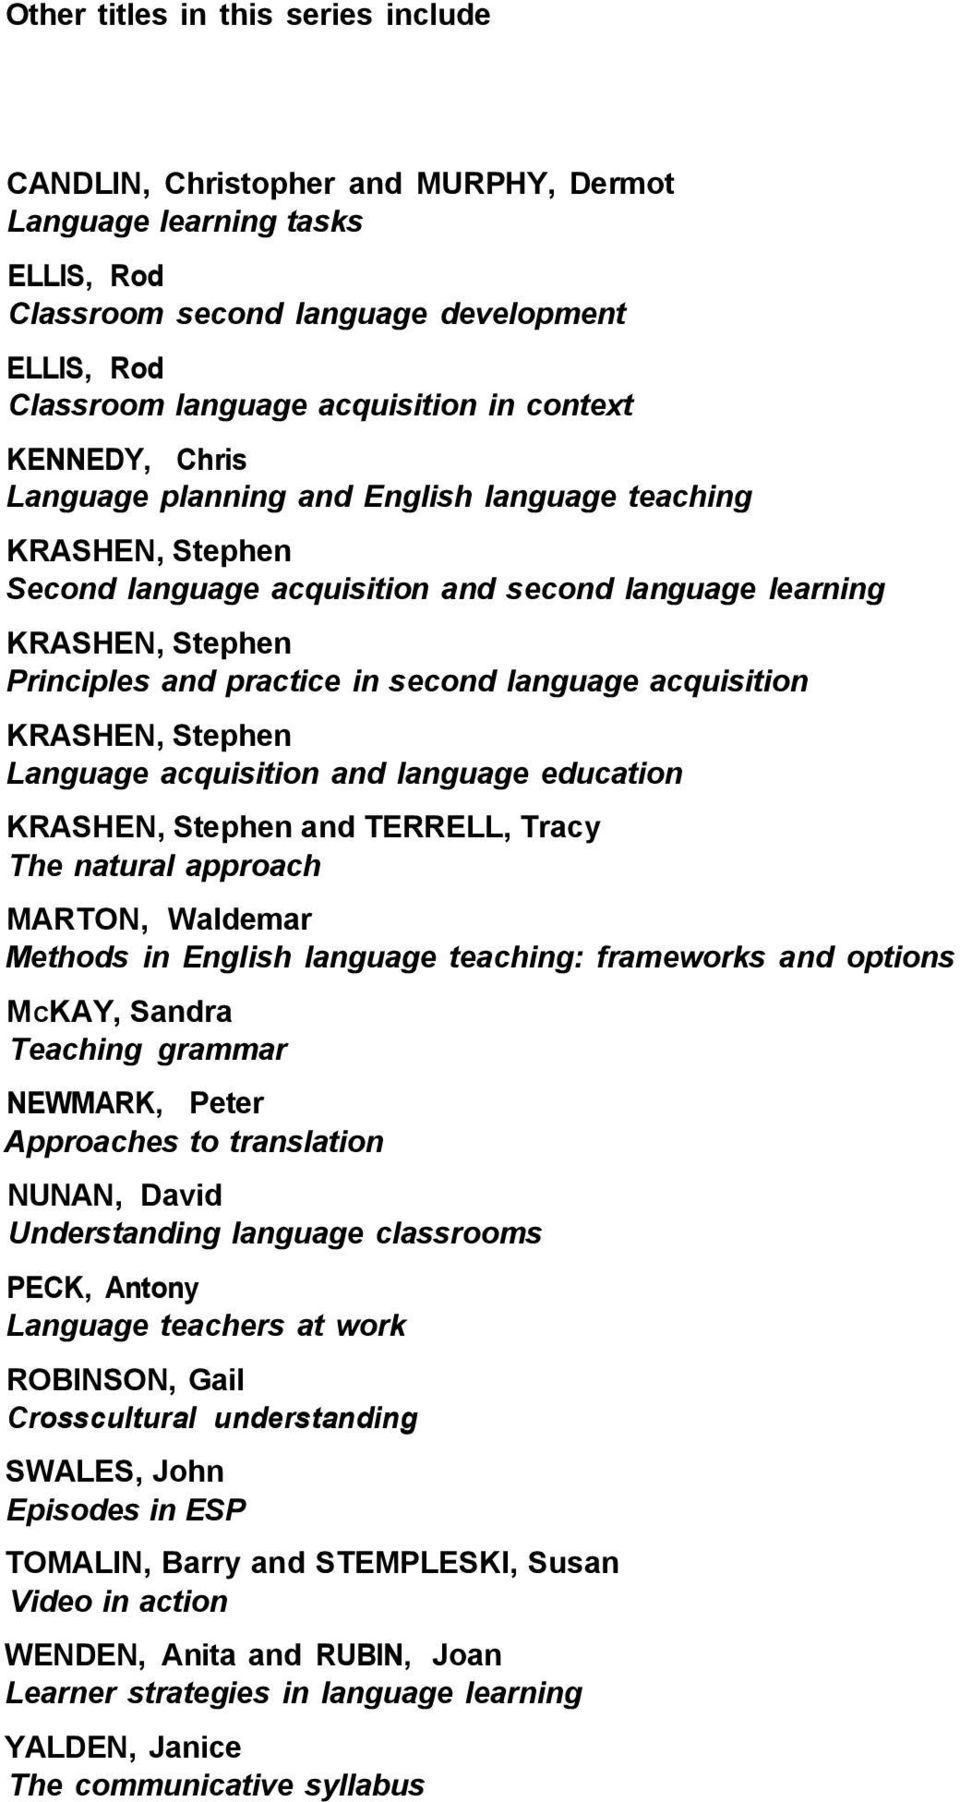 language acquisition KRASHEN, Stephen Language acquisition and language education KRASHEN, Stephen and TERRELL, Tracy The natural approach MARTON, Waldemar Methods in English language teaching: